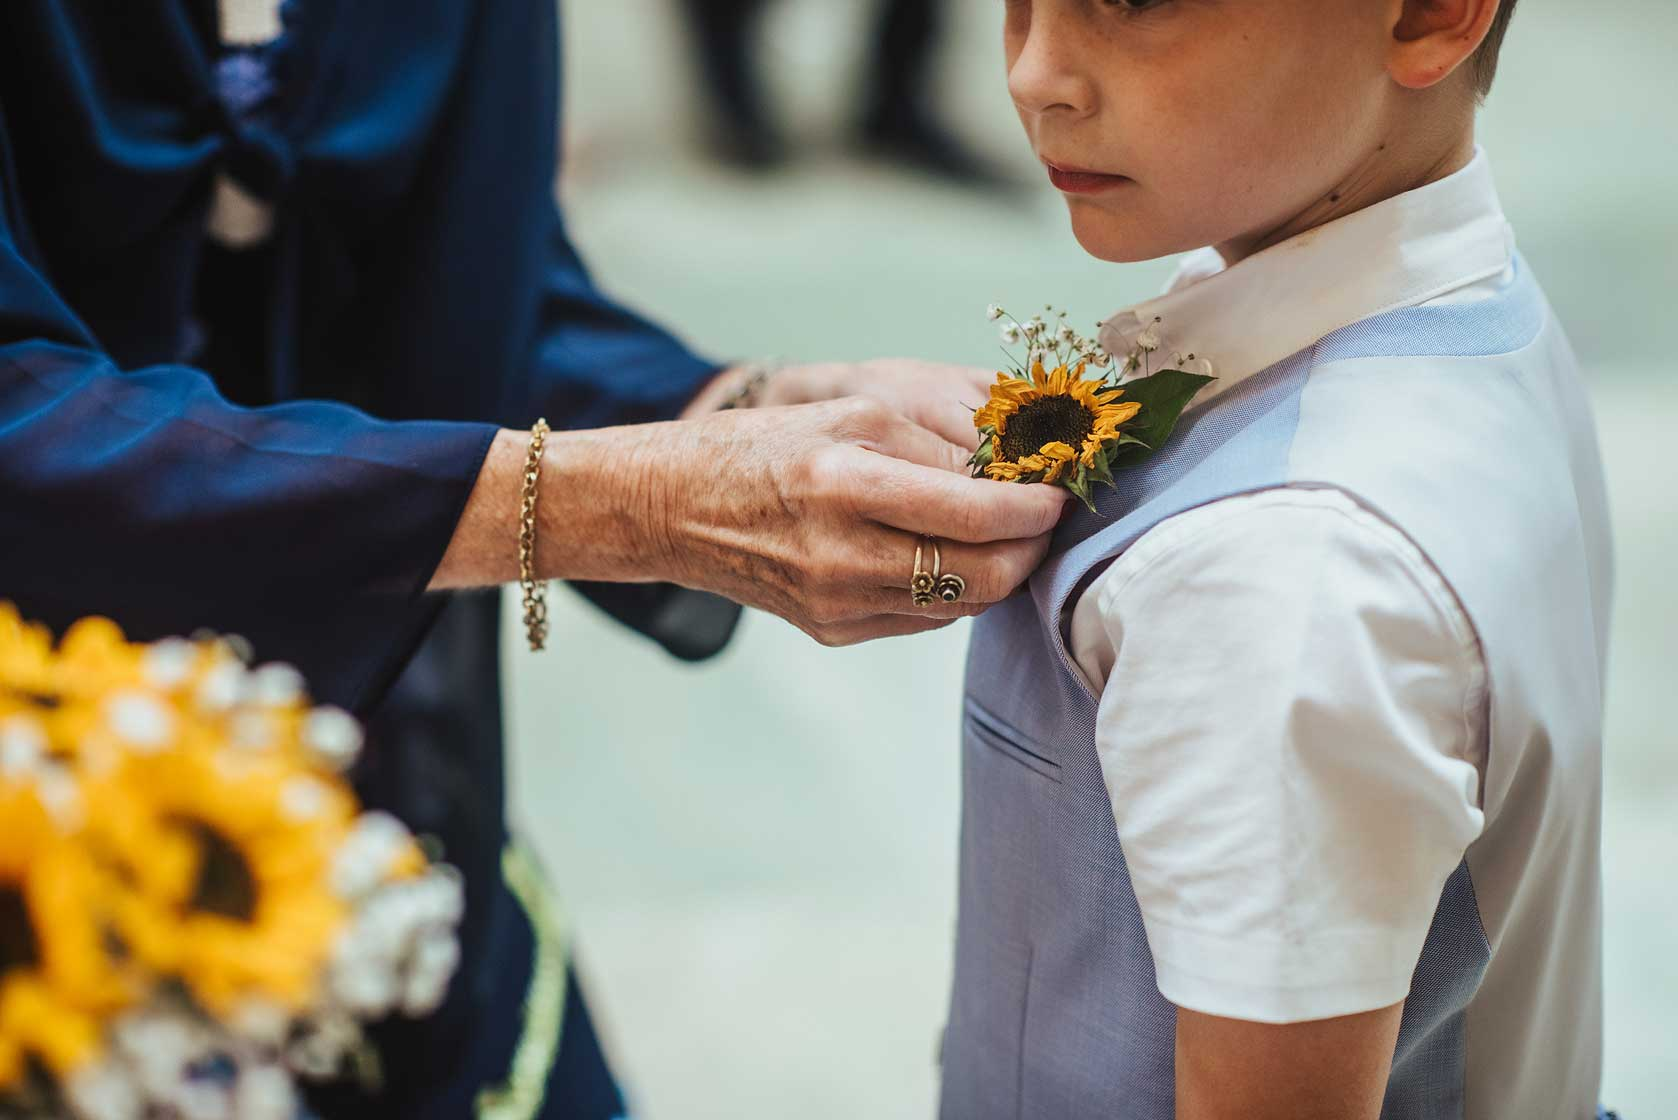 Reportage Wedding Photography at Hackney Town Hall